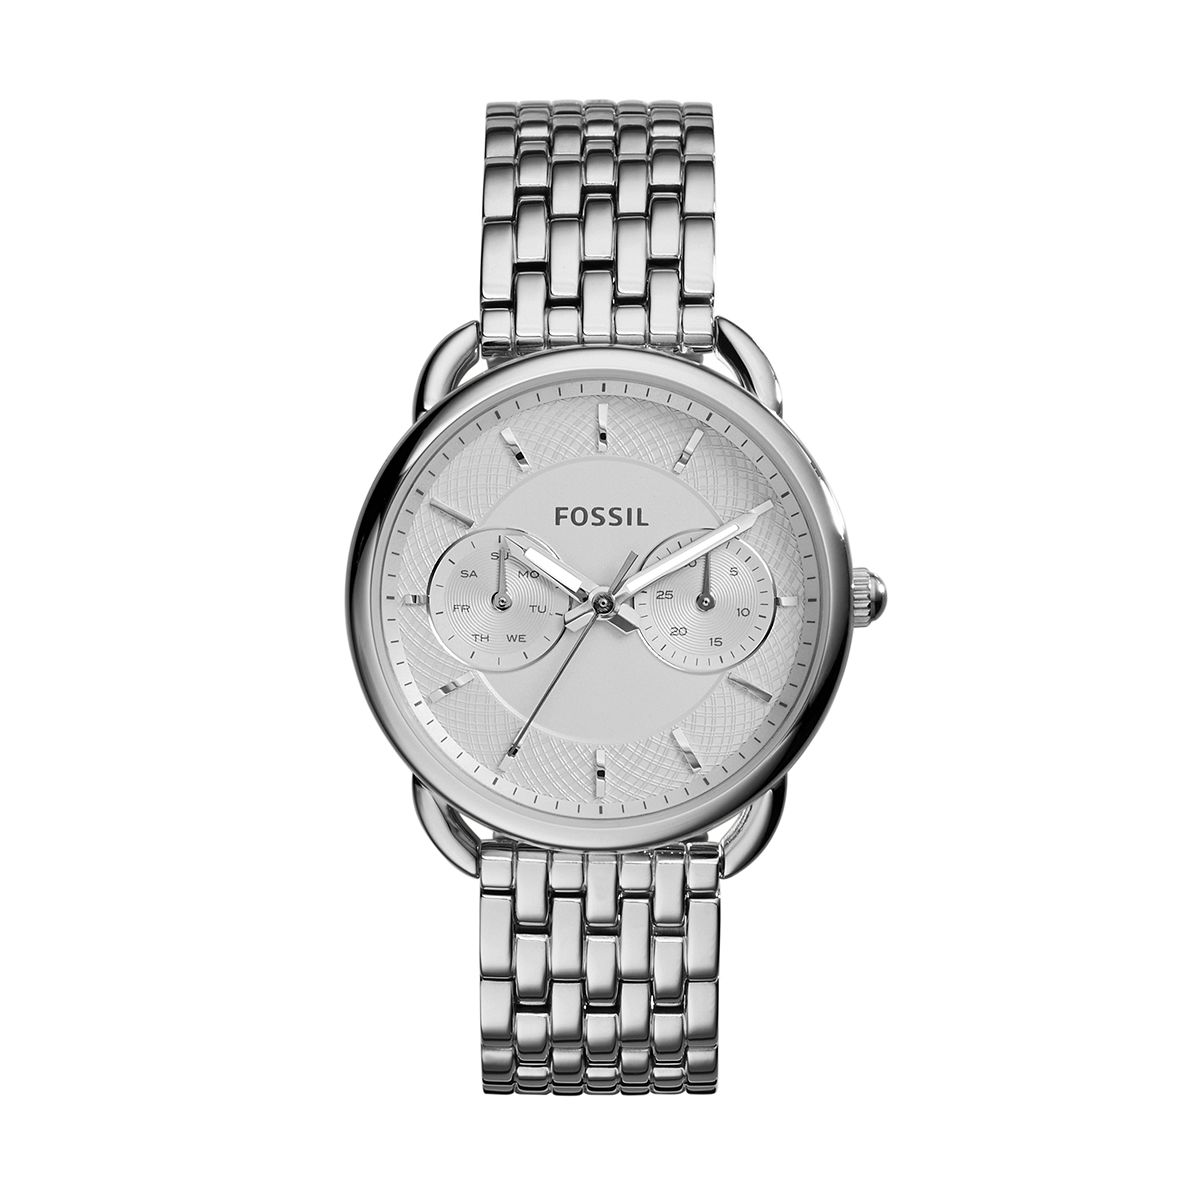 Tailor Ladies Silver Tone Watch / Promotional product